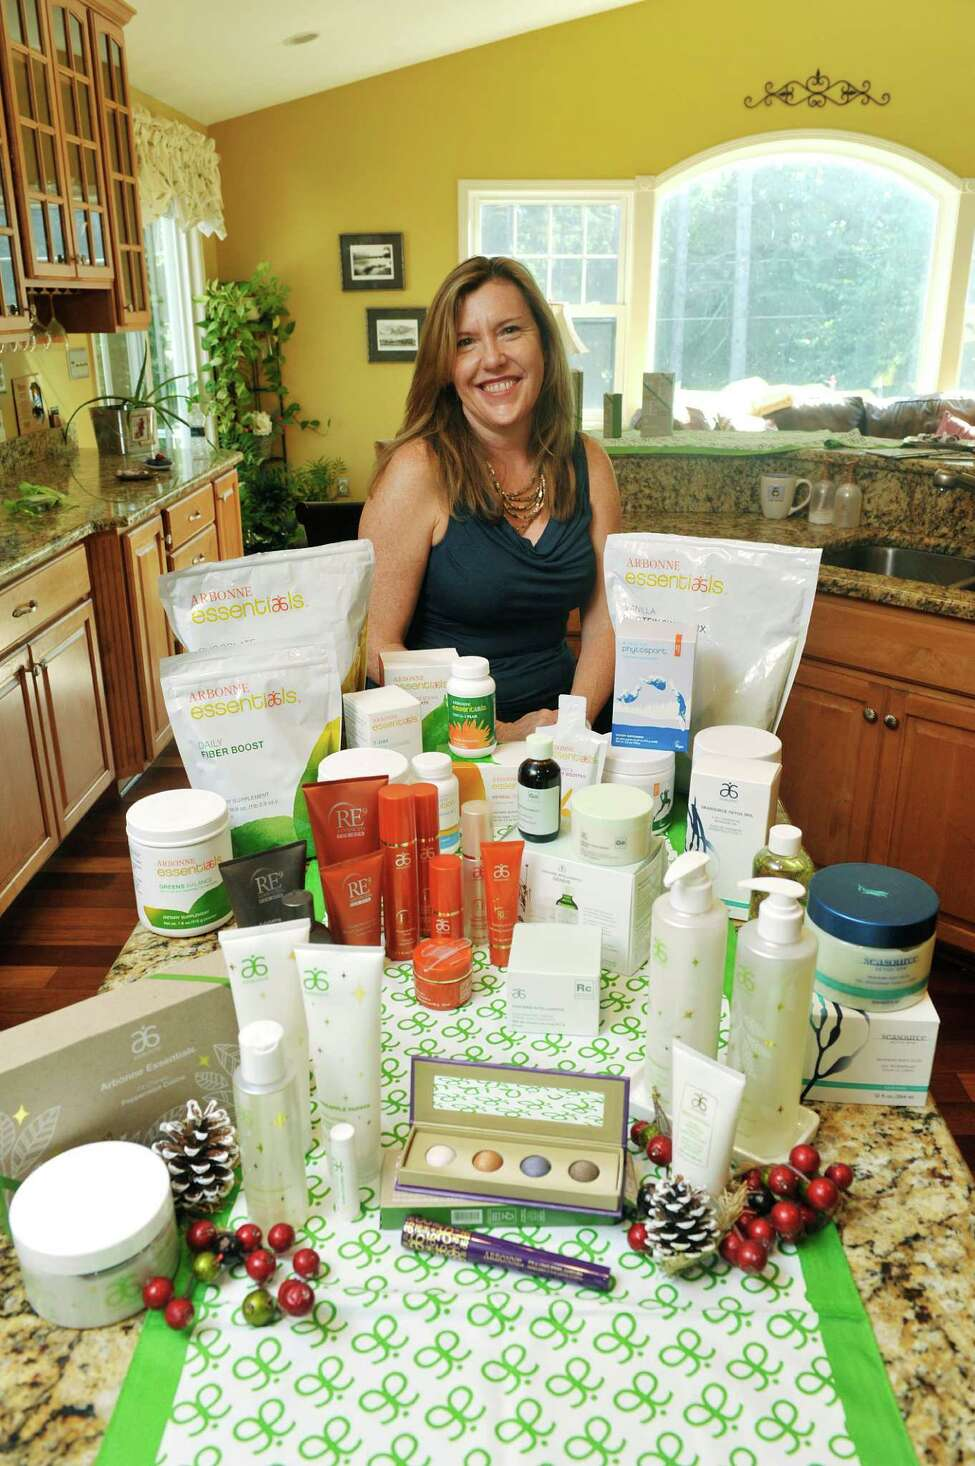 Theresa Marangas, an Arbonne independent consultant, poses for a photograph for some of the Arbonne products at her home. (Paul Buckowski / Times Union)